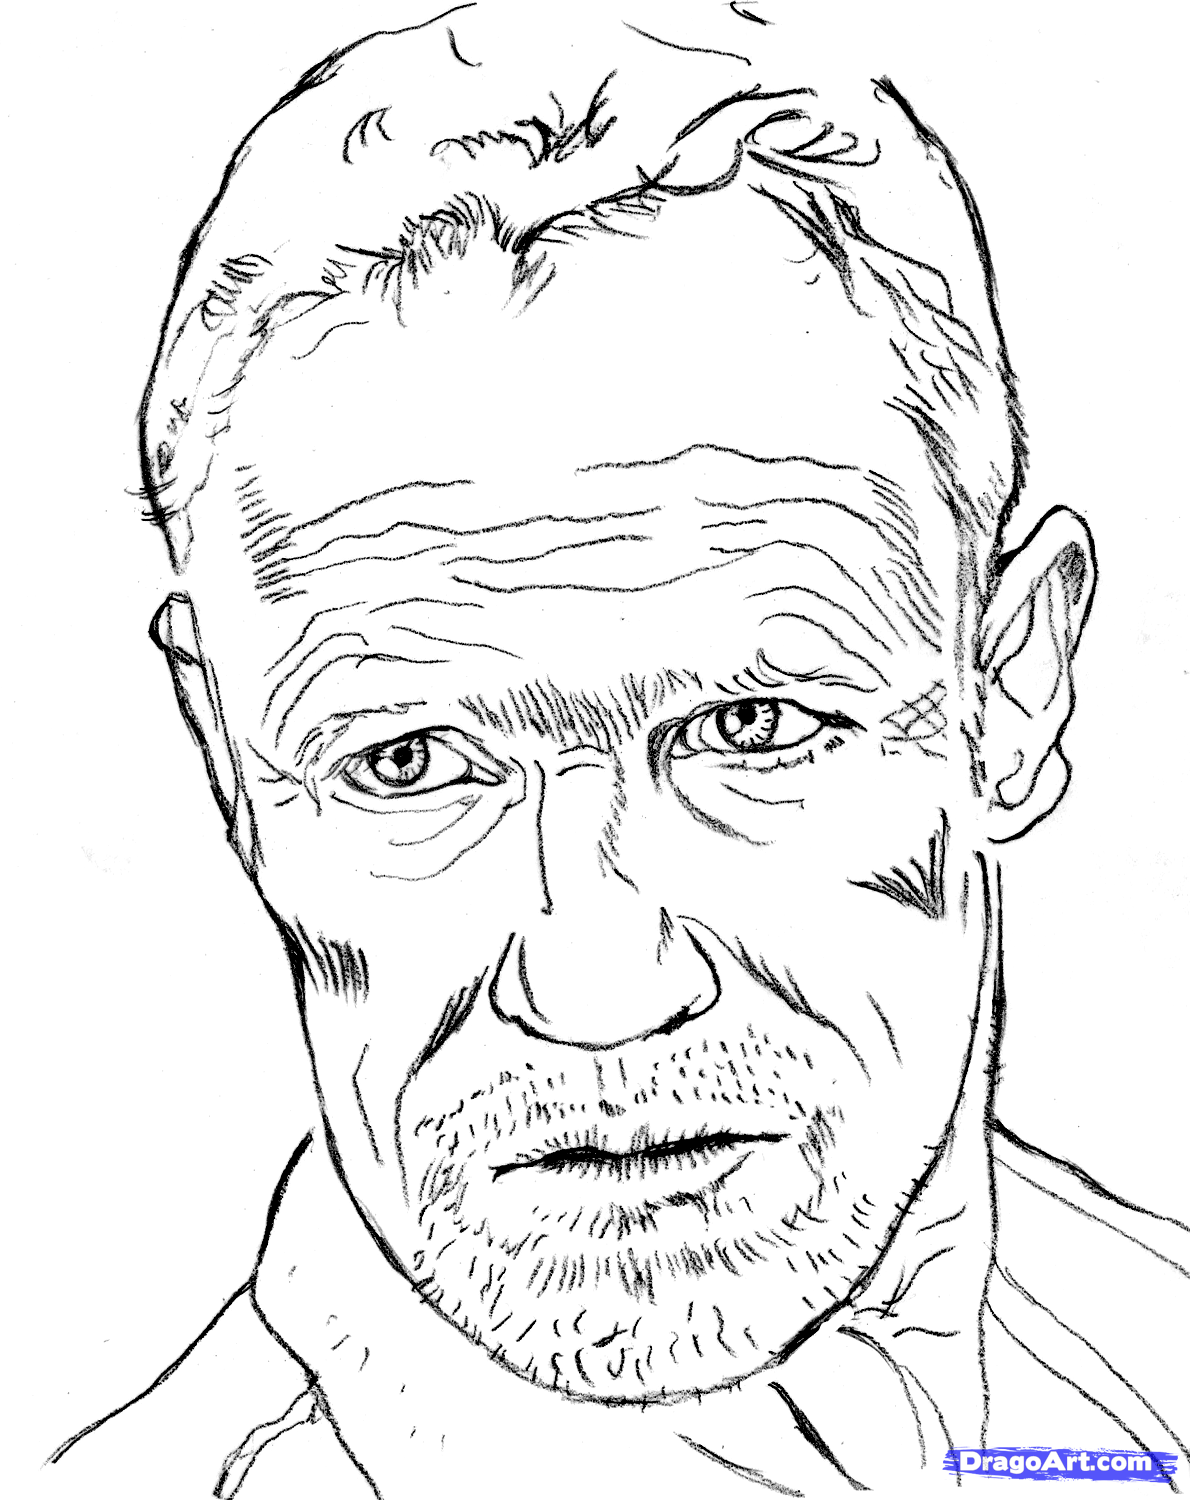 The walking dead daryl coloring pages how to draw merle dixon Walking Dead Daryl Motorcycle Coloring Page Daryl Dixon Coloring Pages Daryl From Walking Dead Stencil